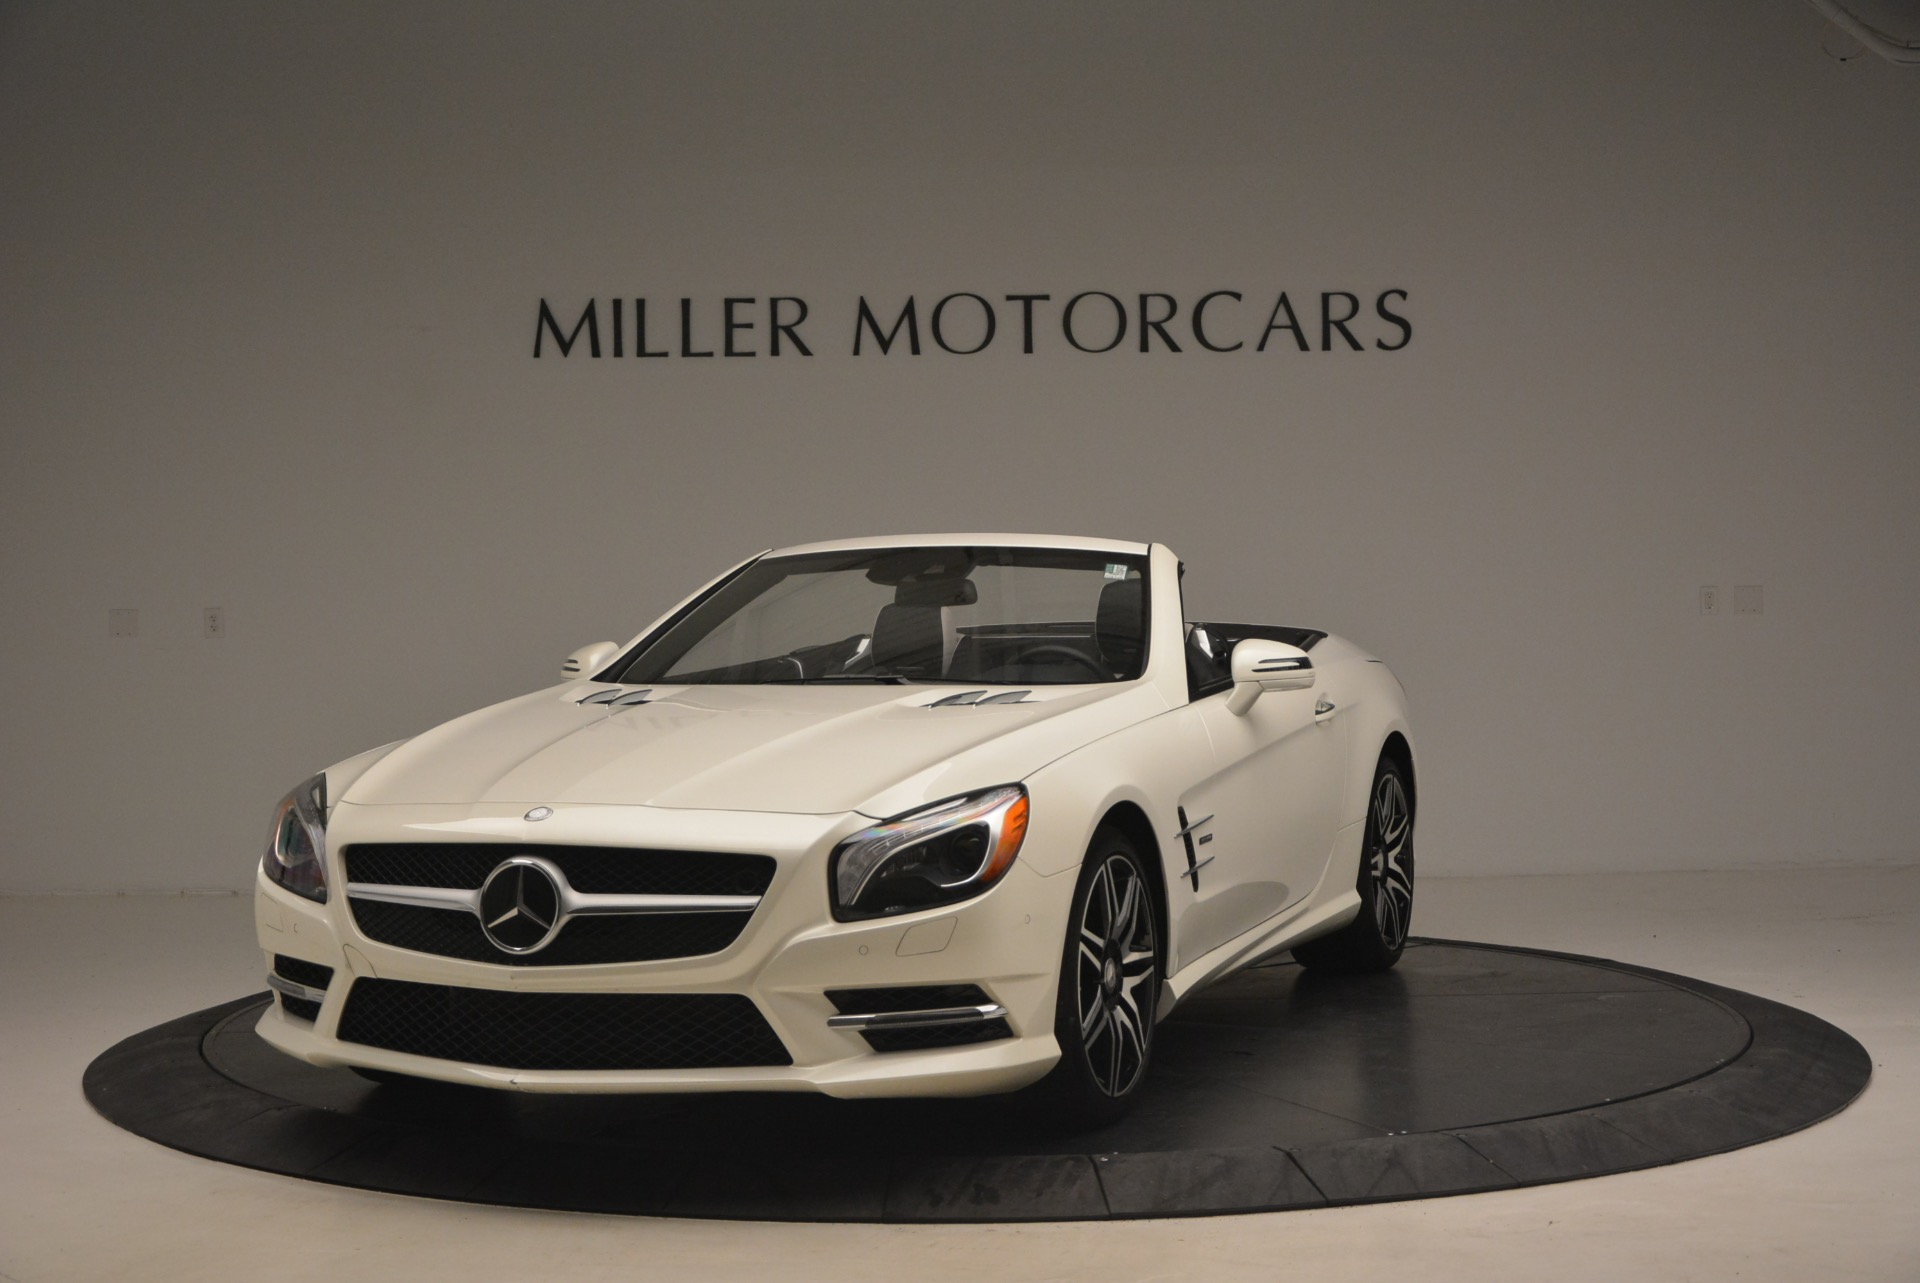 Used 2015 Mercedes Benz SL-Class SL 550 for sale Sold at Pagani of Greenwich in Greenwich CT 06830 1